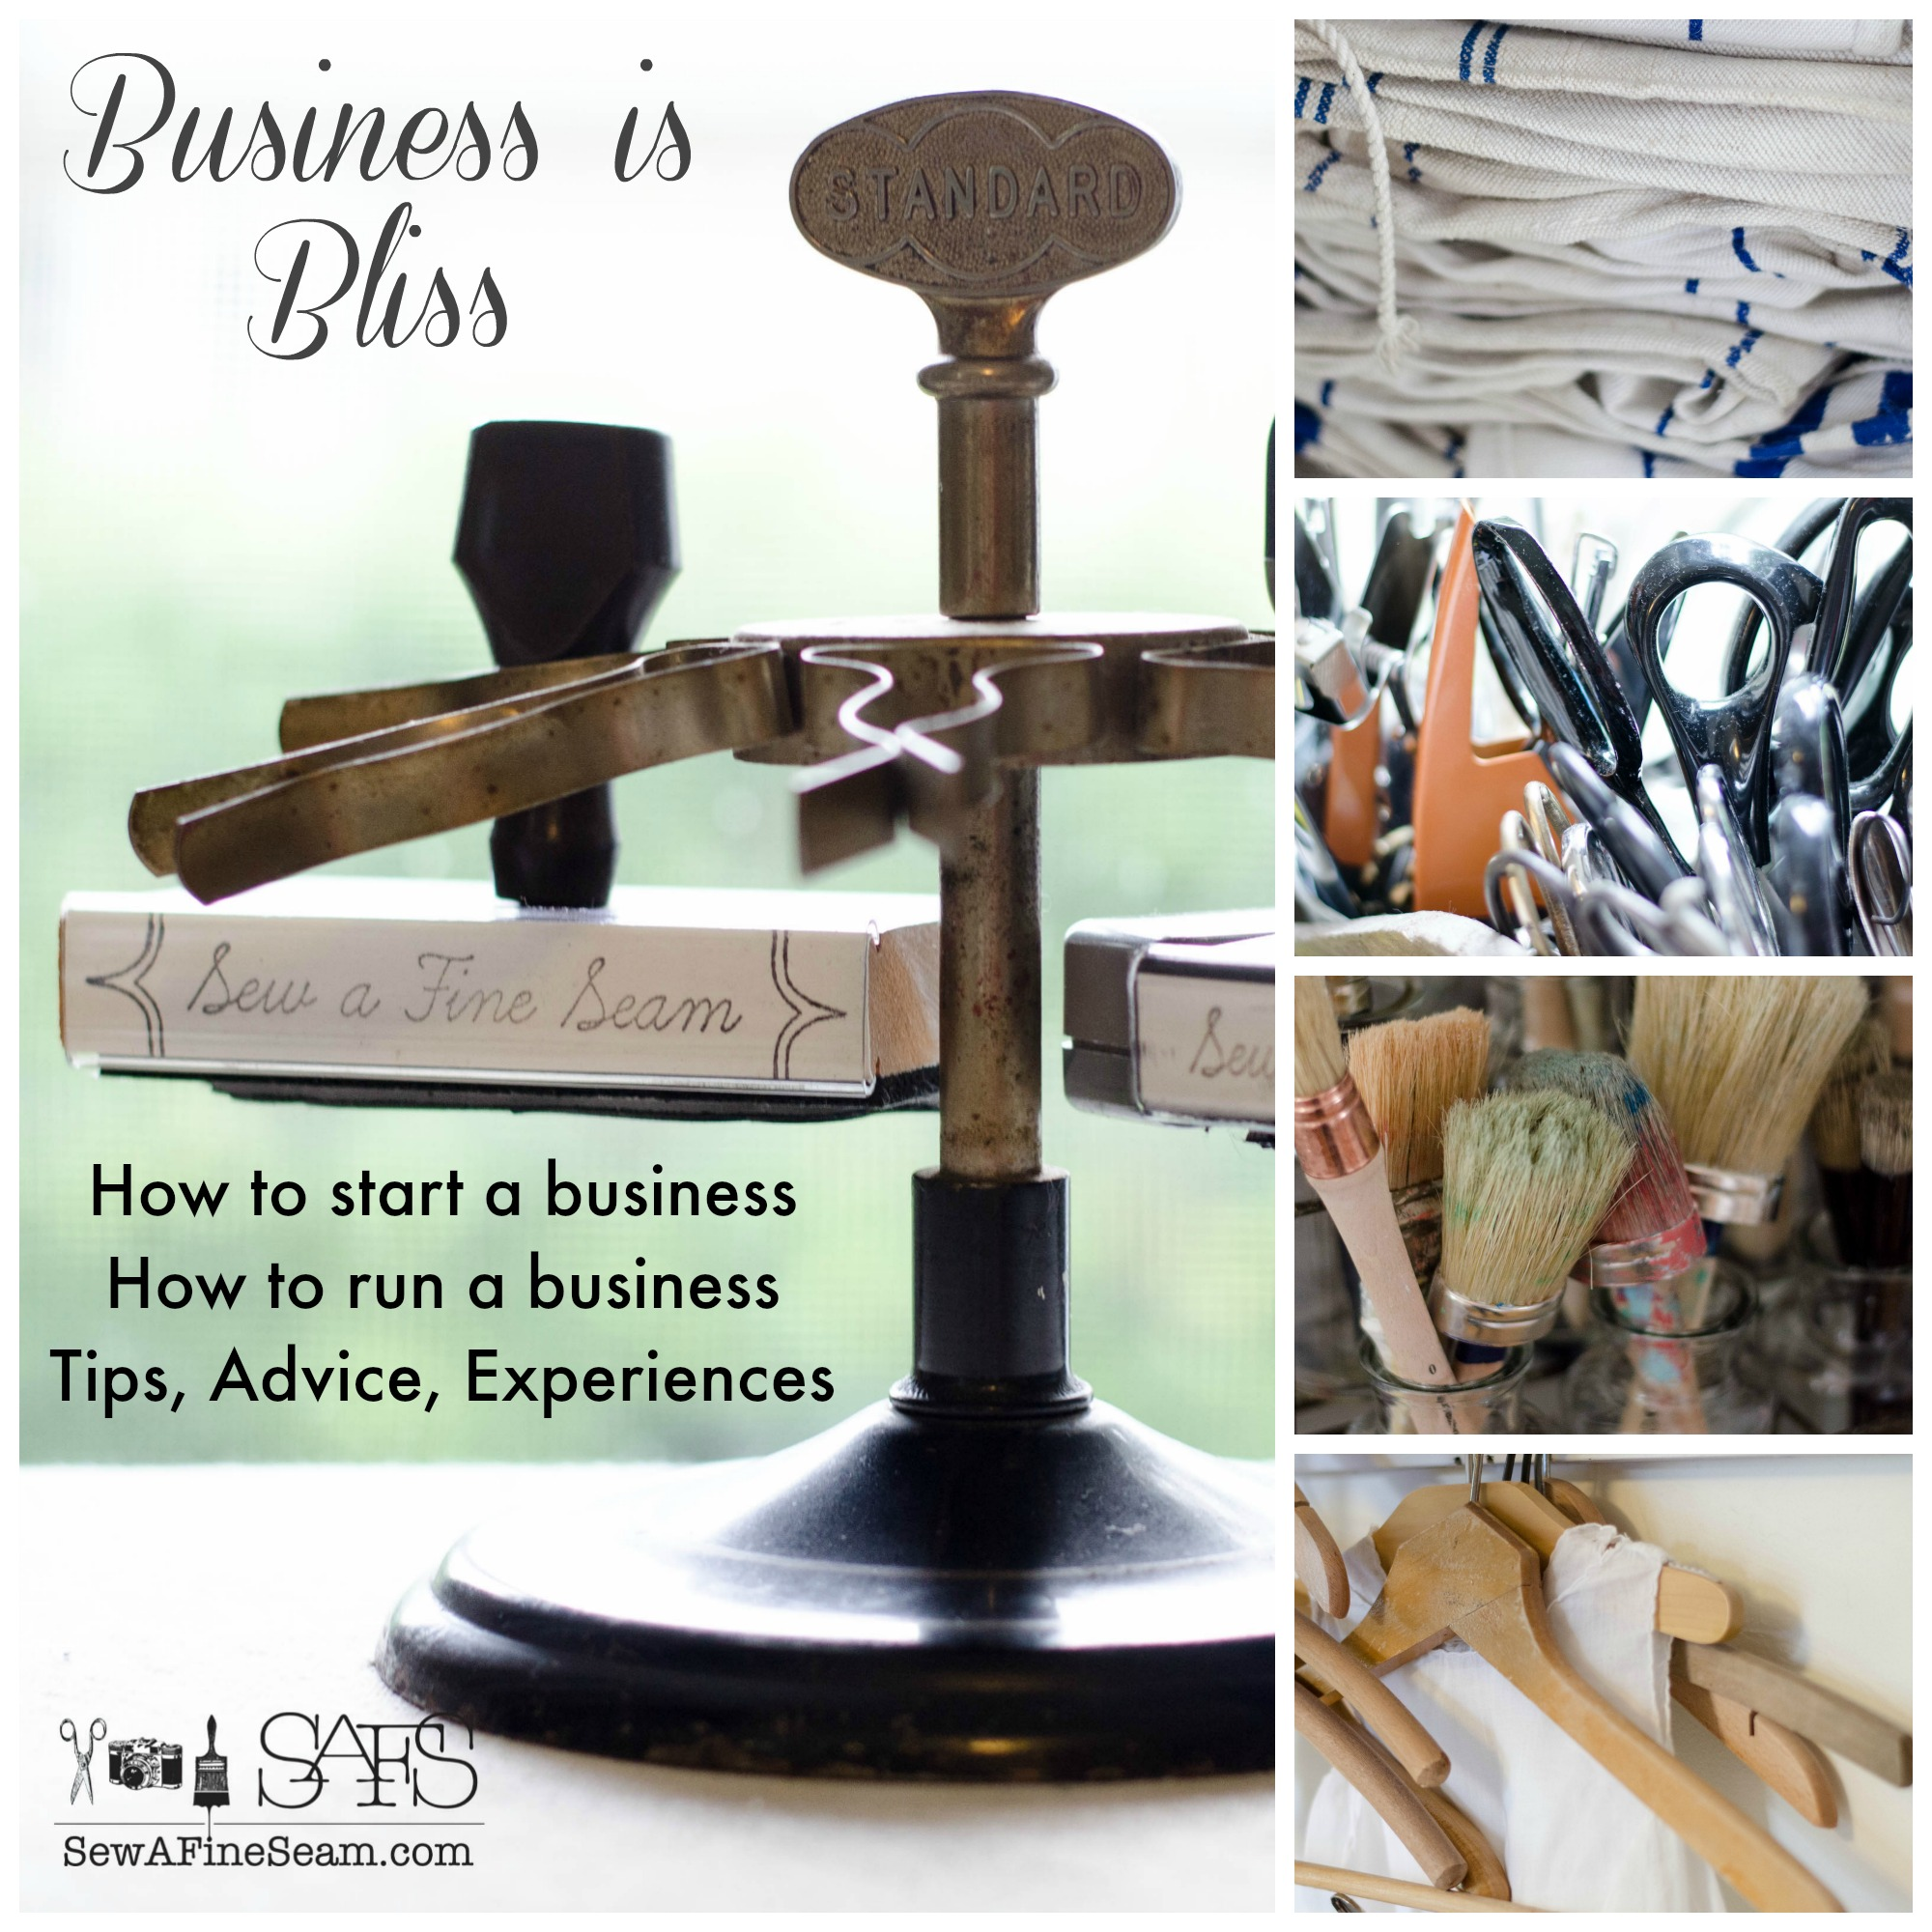 How To Start a Business – Business is Bliss 101